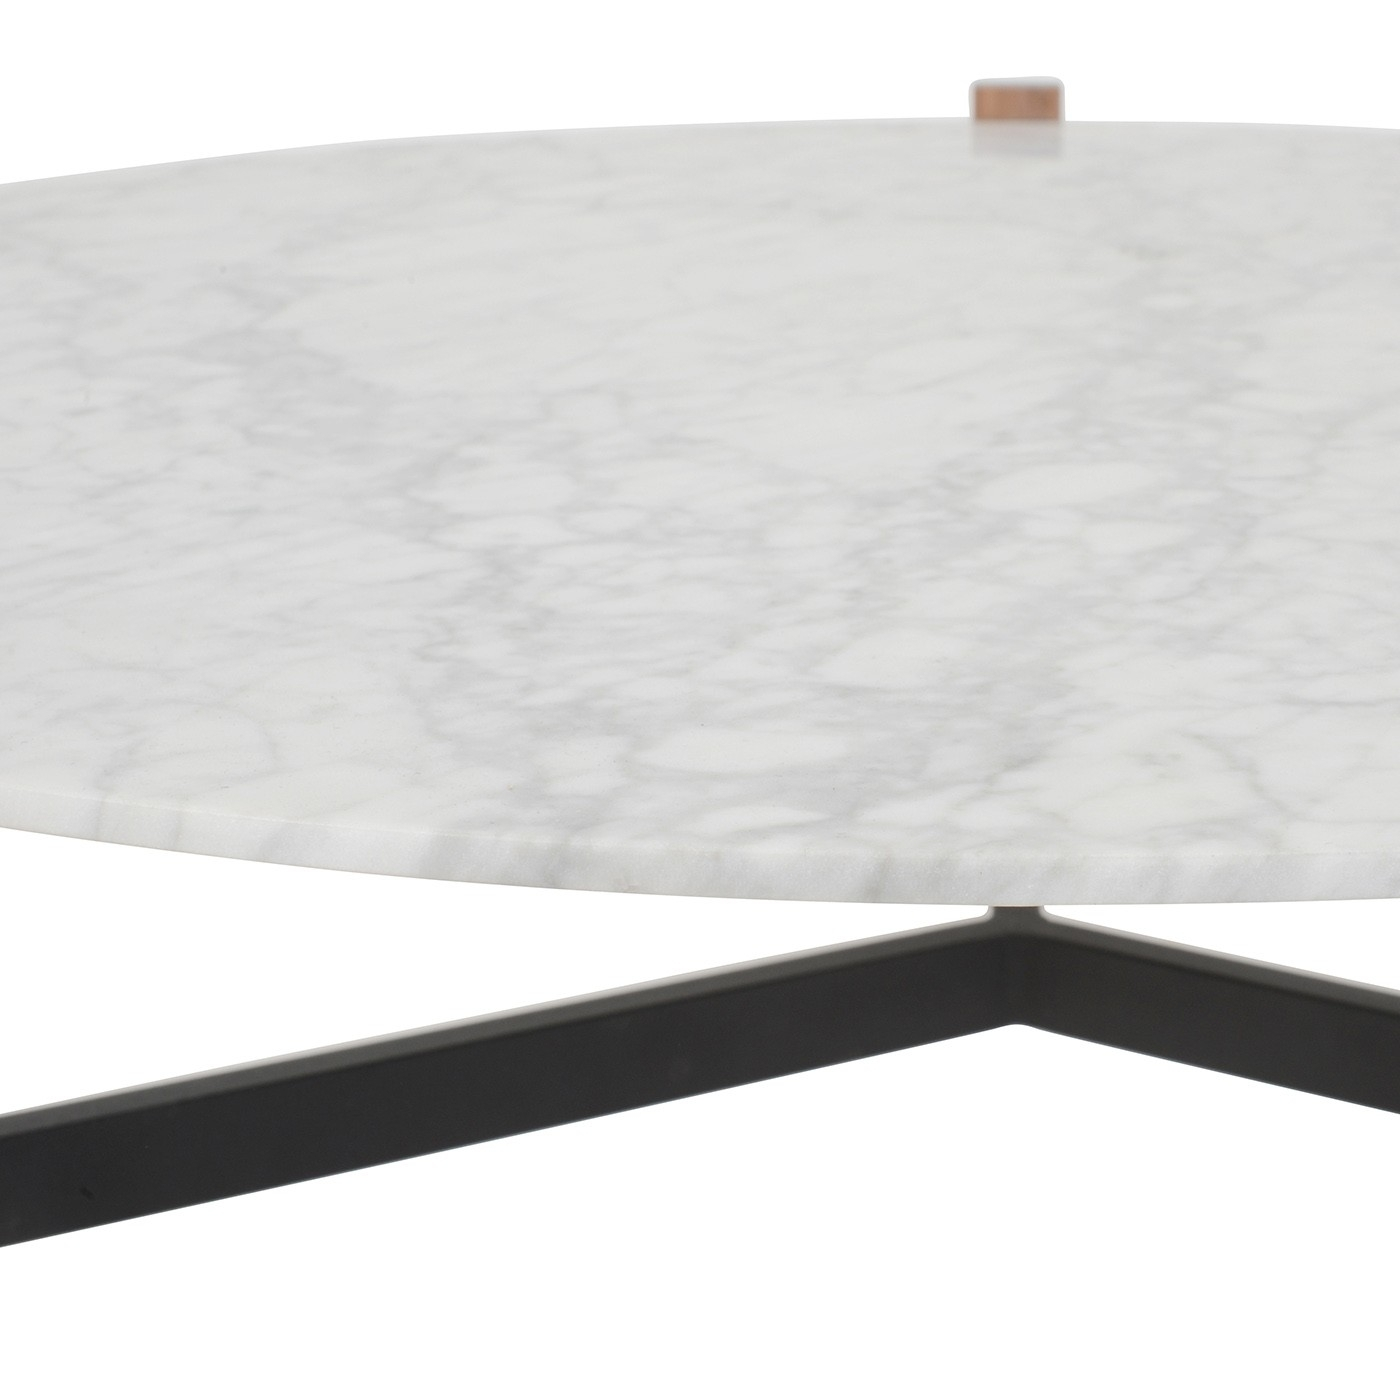 Blu Dot Free-Range Coffee Table In Marble | Heal's pertaining to Suspend Ii Marble And Wood Coffee Tables (Image 1 of 30)